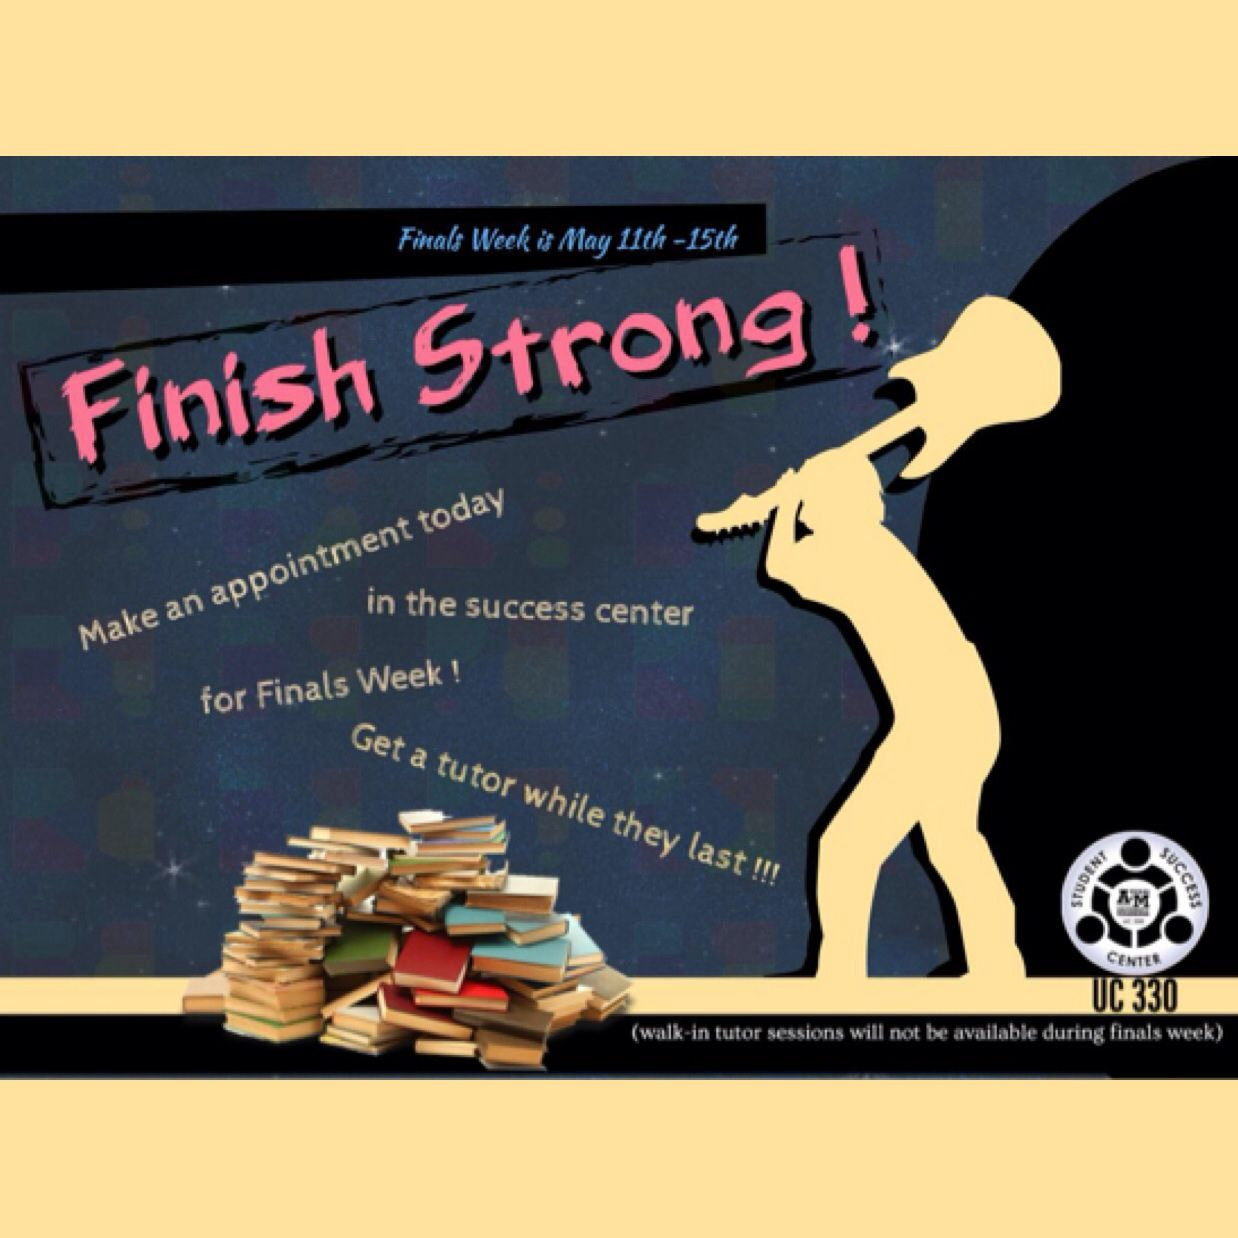 Finish Strong! Make your appointments now in the Student